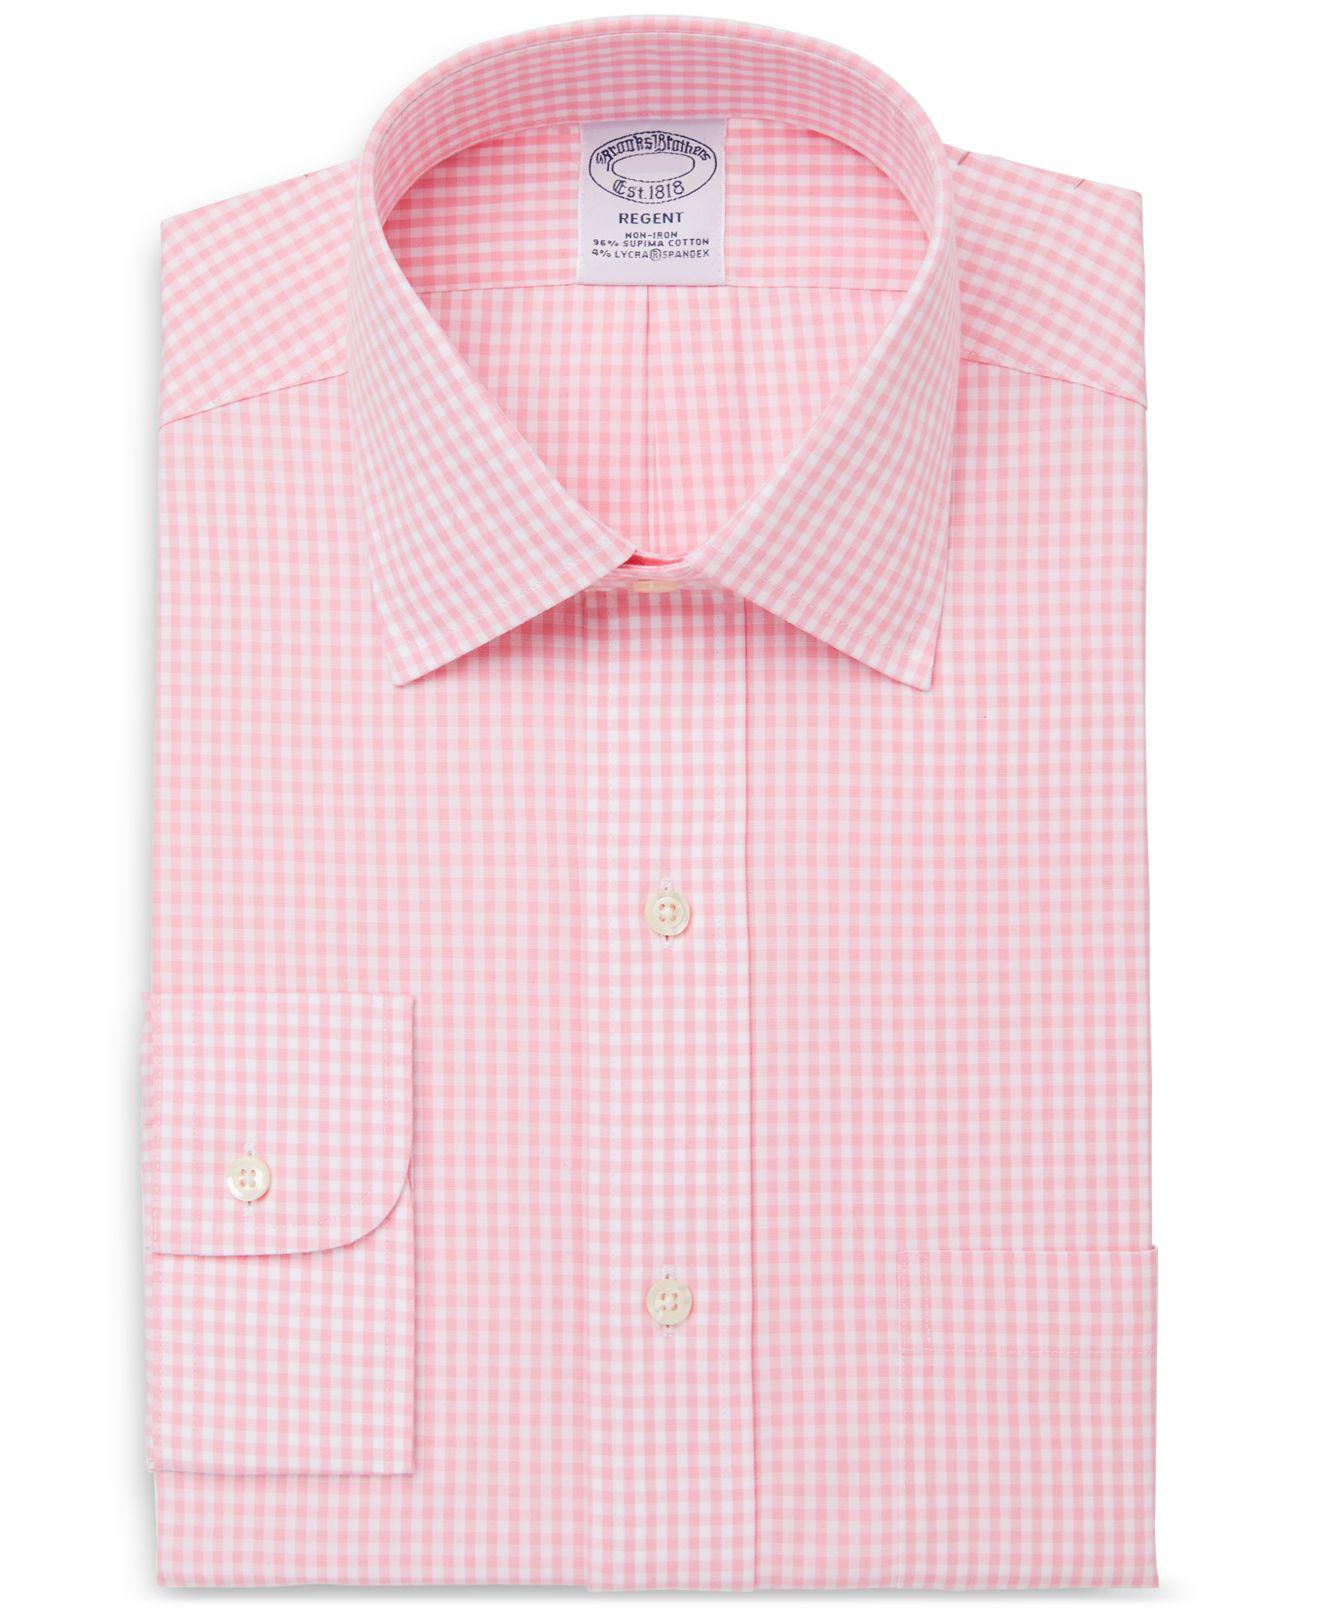 Lyst Brooks Brothers Slim Fit Non Iron Stretch Gingham Dress Shirt